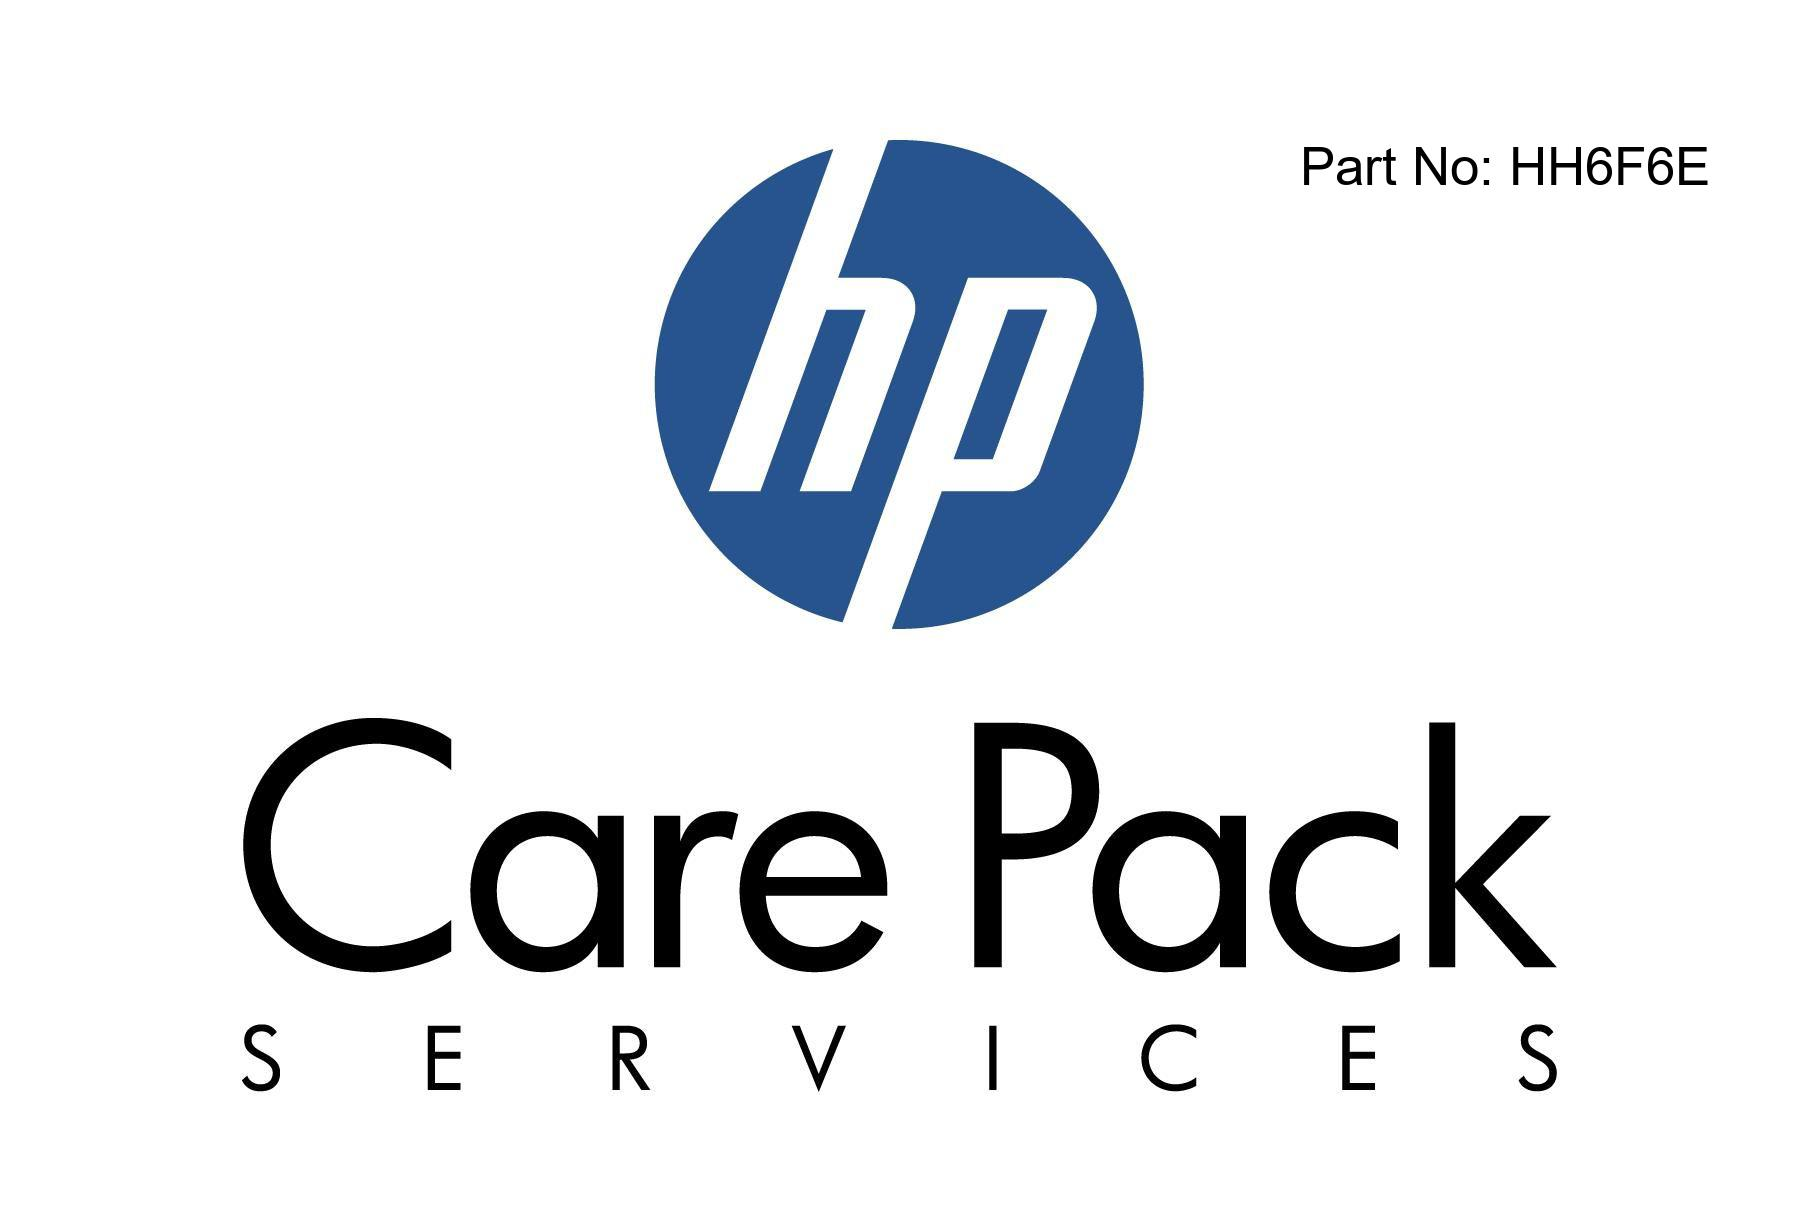 Foundation Care 24x7 Service - Extended service agreement - parts and labor - 5 years - on-site - 24x7 - response time: 4 h - for StoreEasy 1460